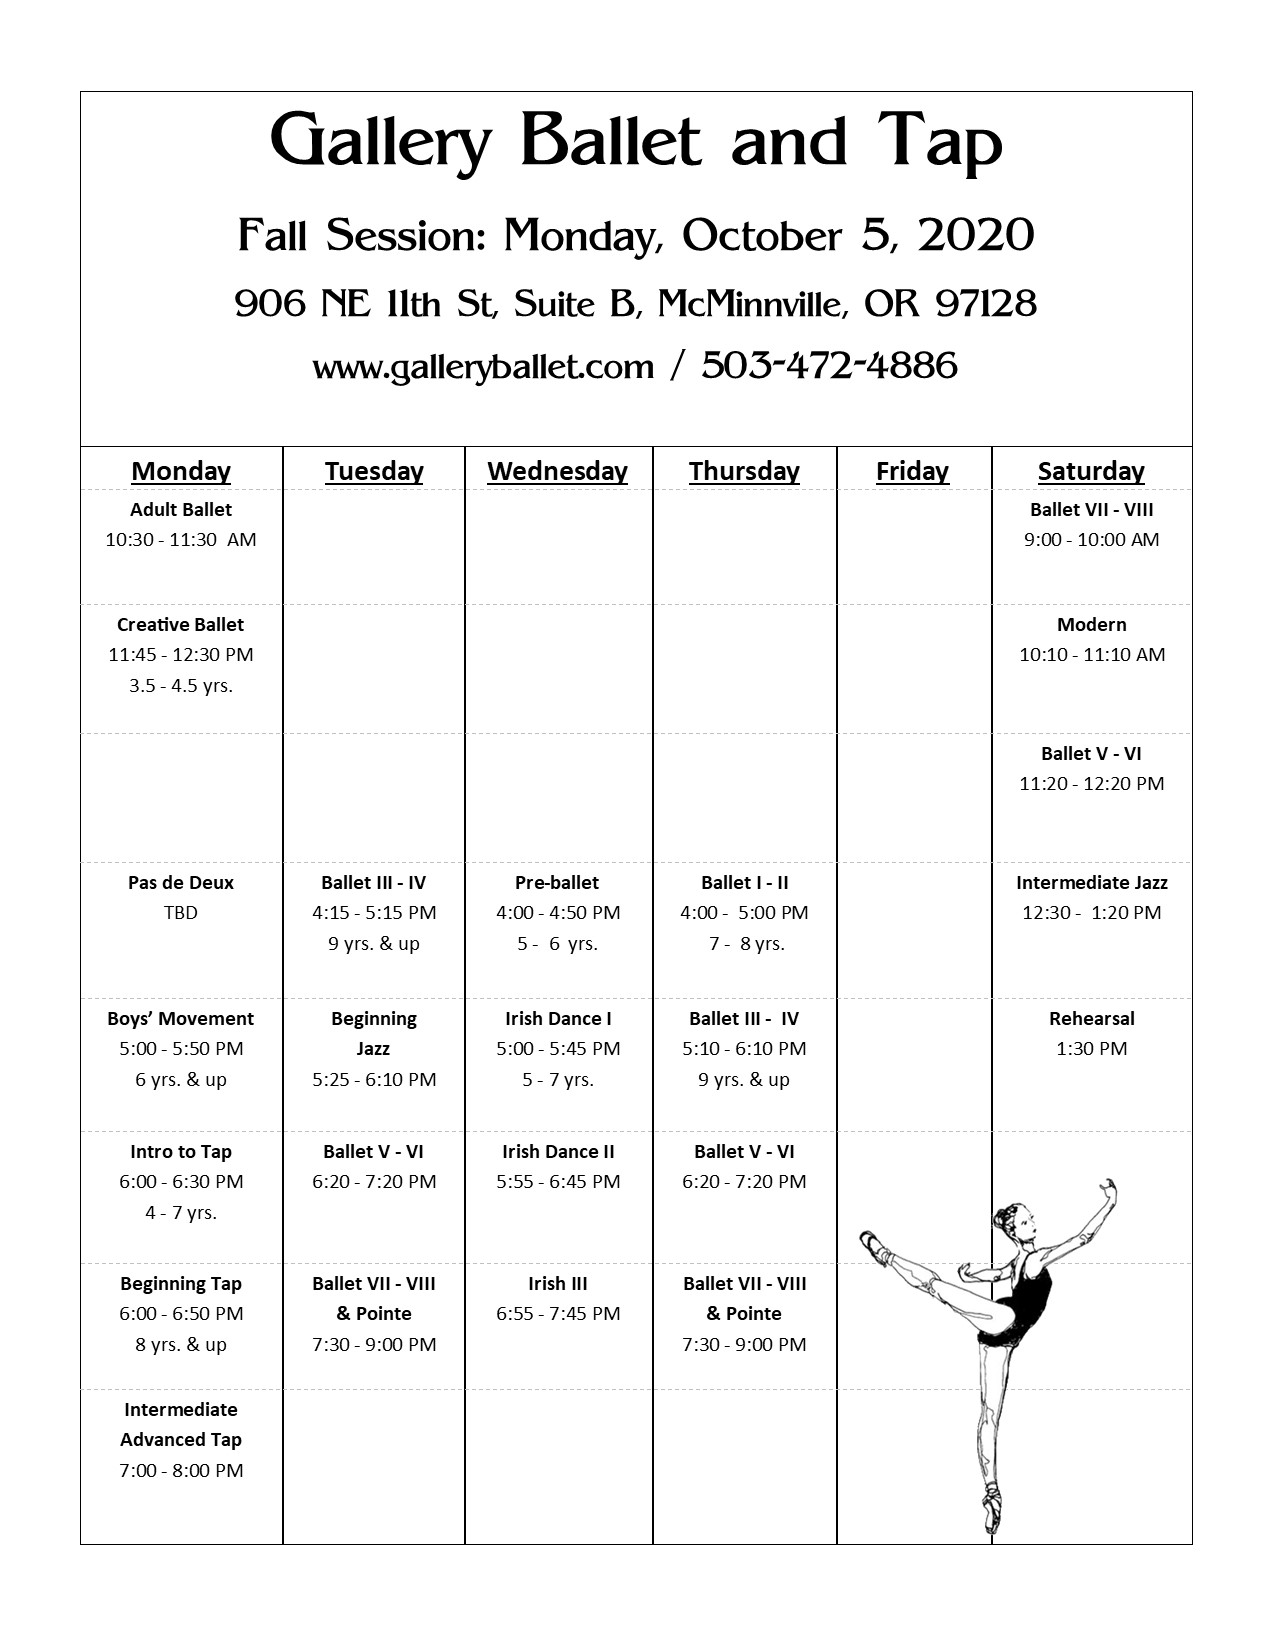 Fall Session 2020